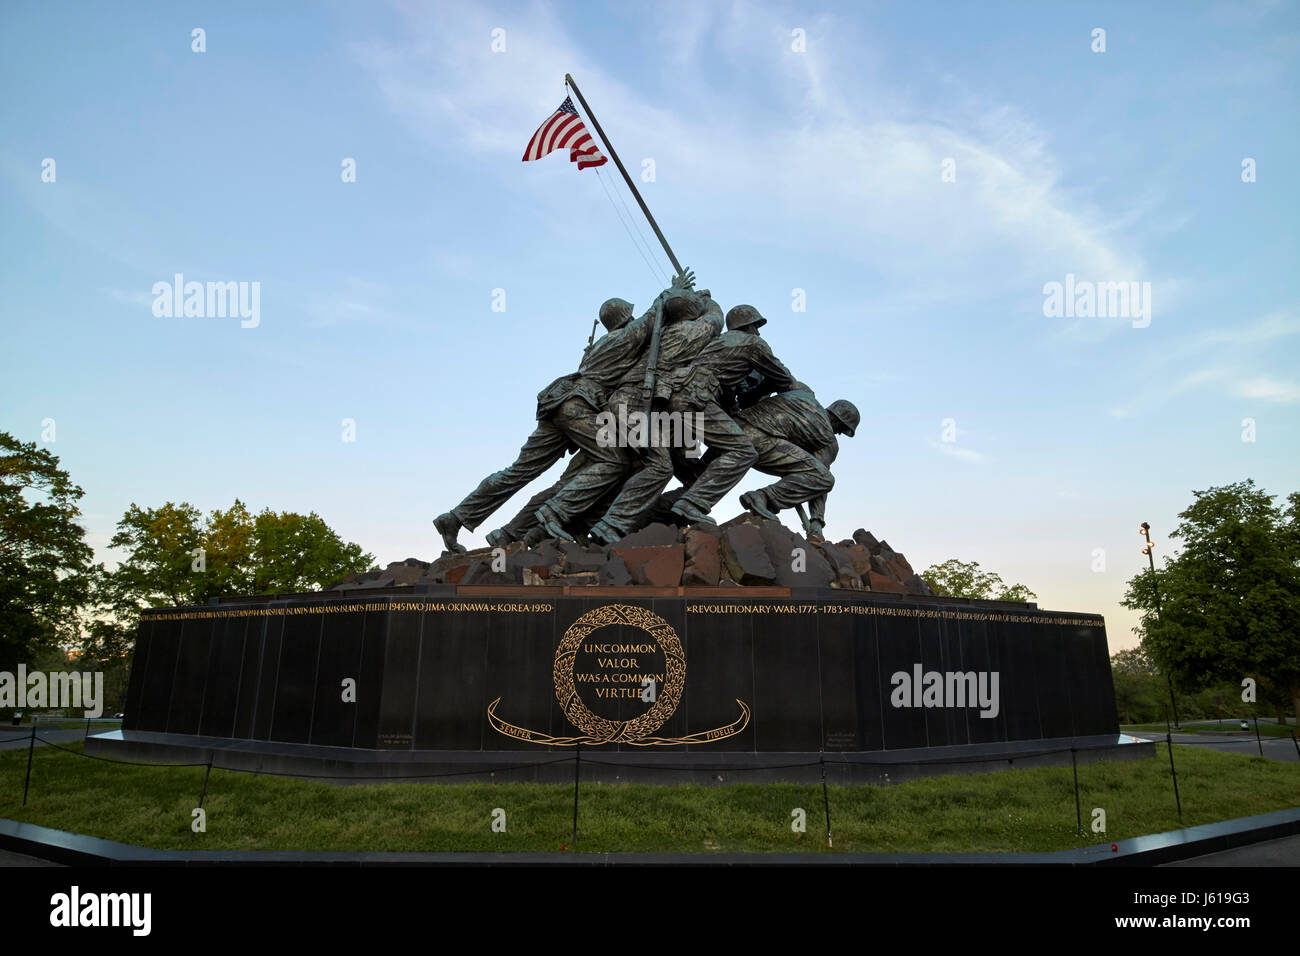 the ballte of iwo jima mission What was the strategic significance of iwo jima in the us  corps veteran at the battle of iwo jima:  fuel pump failed at the beginning of the mission.